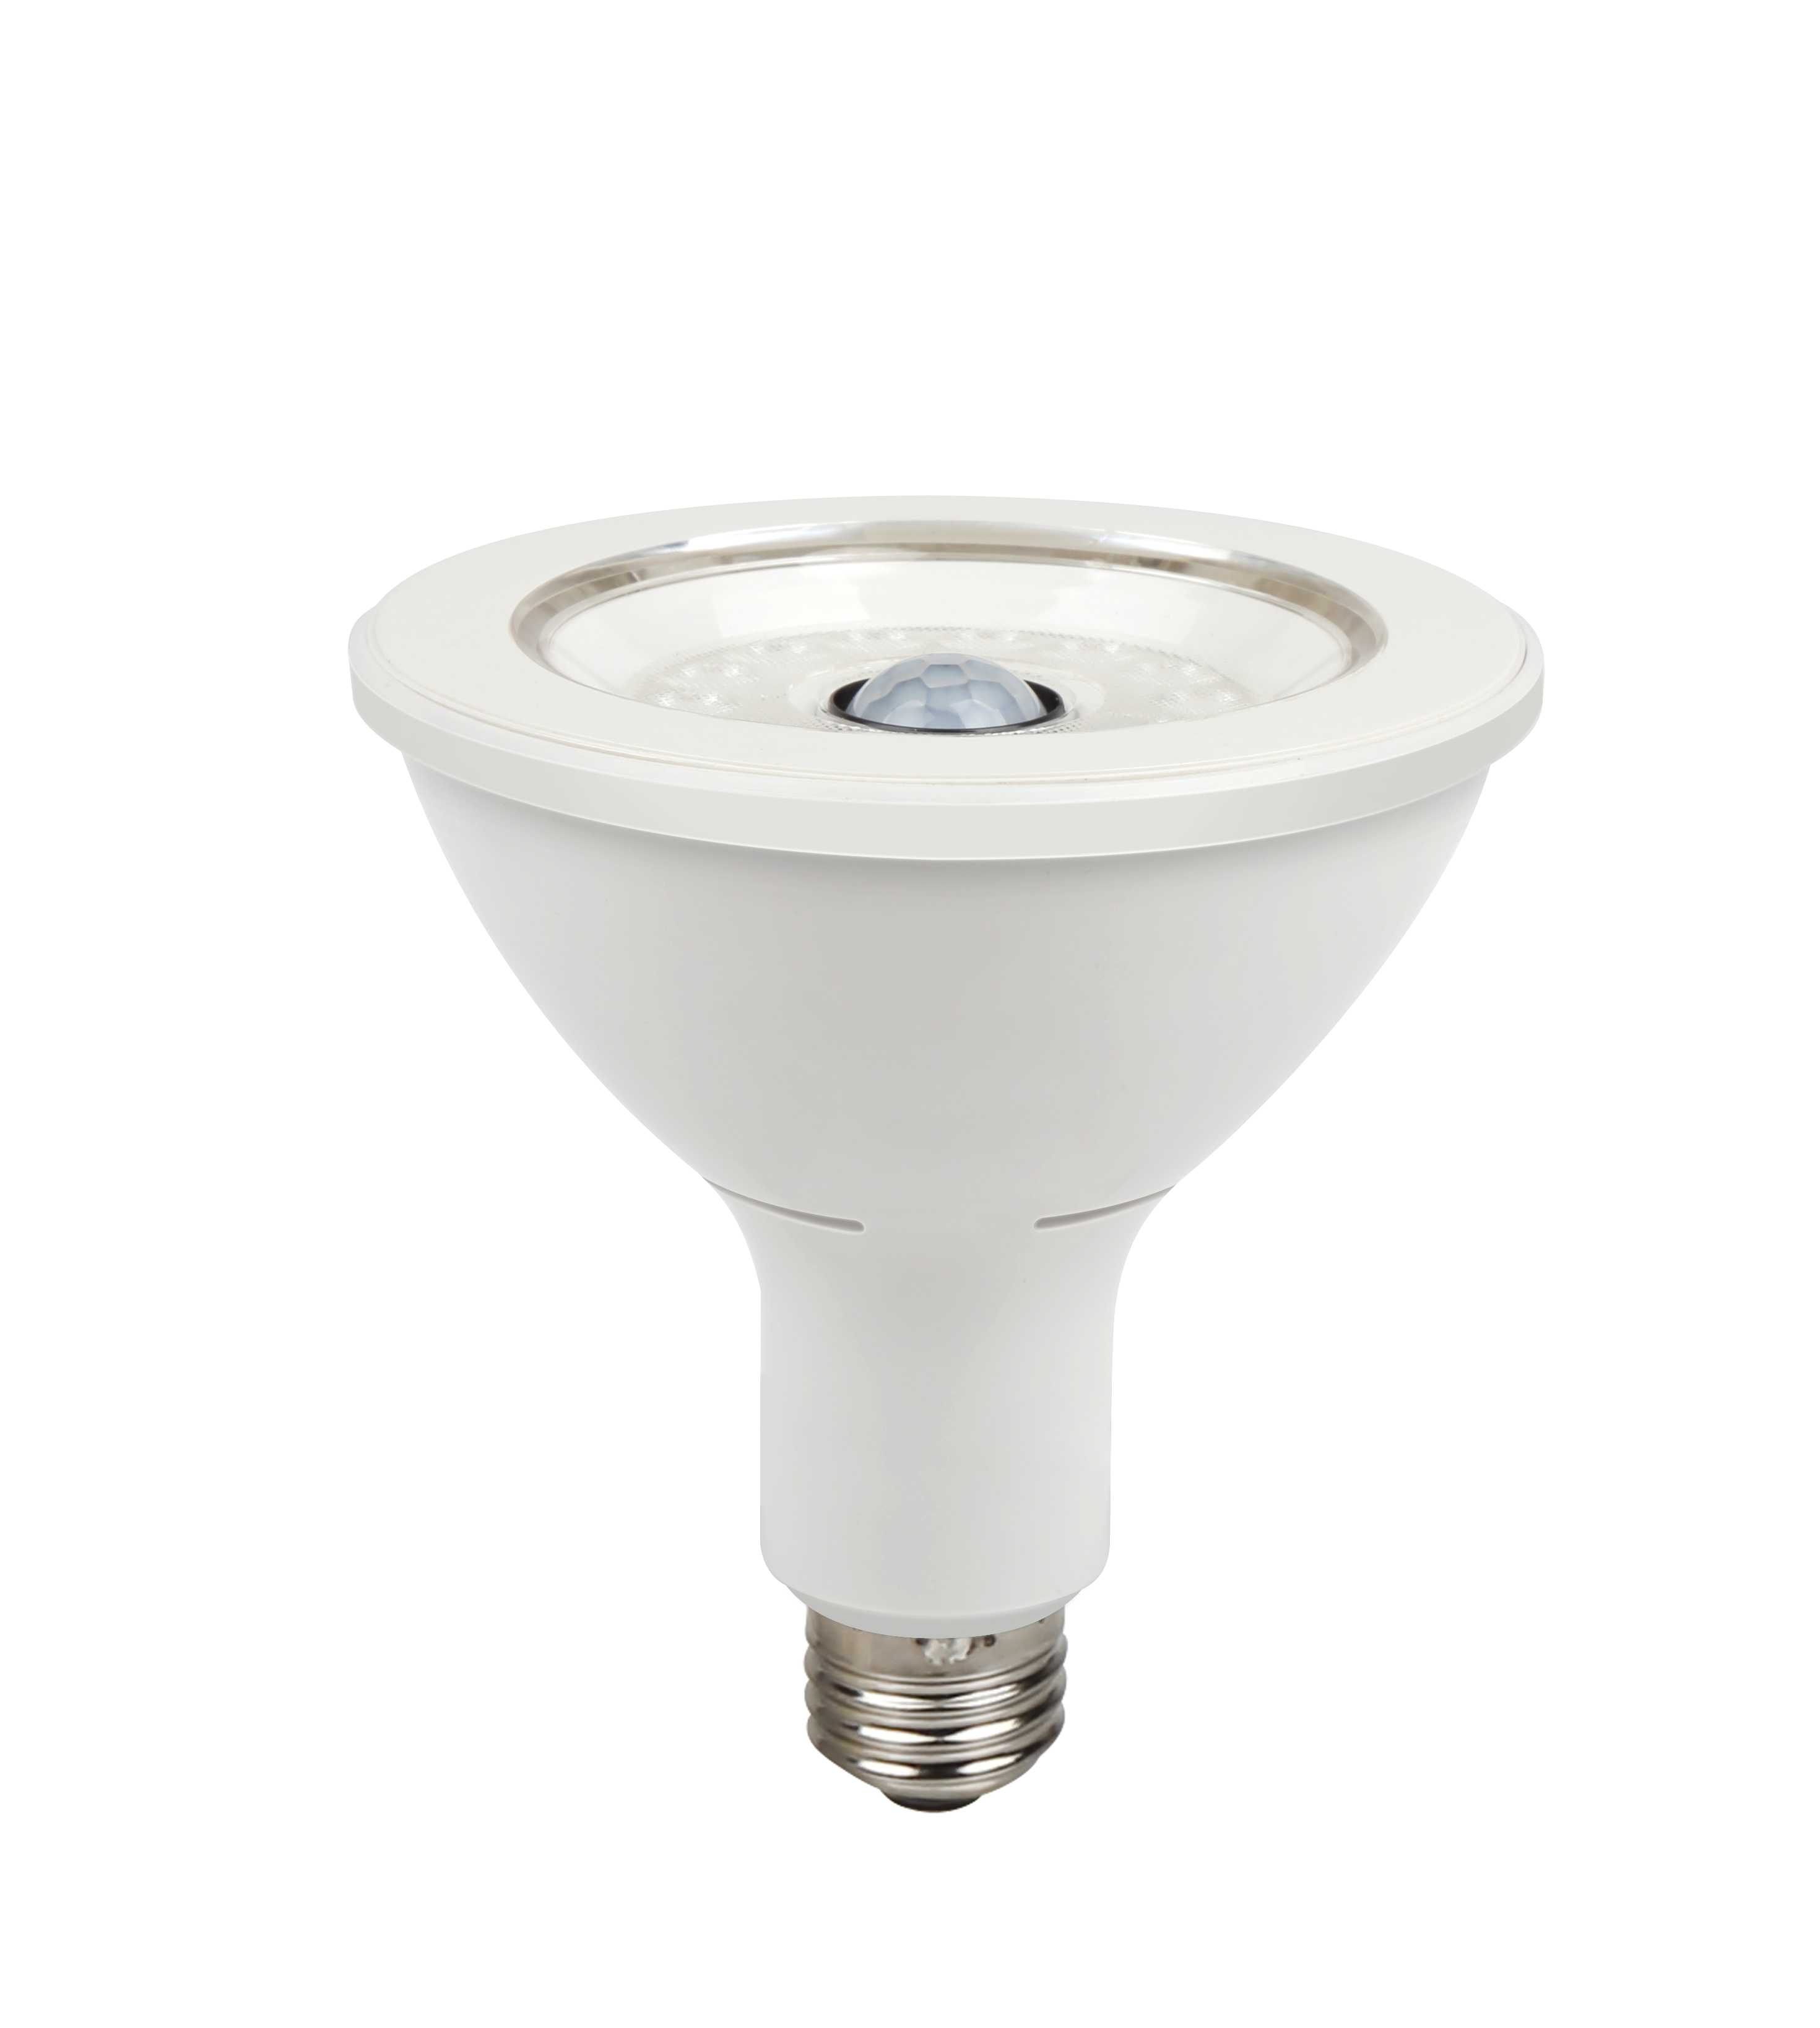 Motion-Sensing-LED-Light-Bulb-Sengled-Smart-Sense